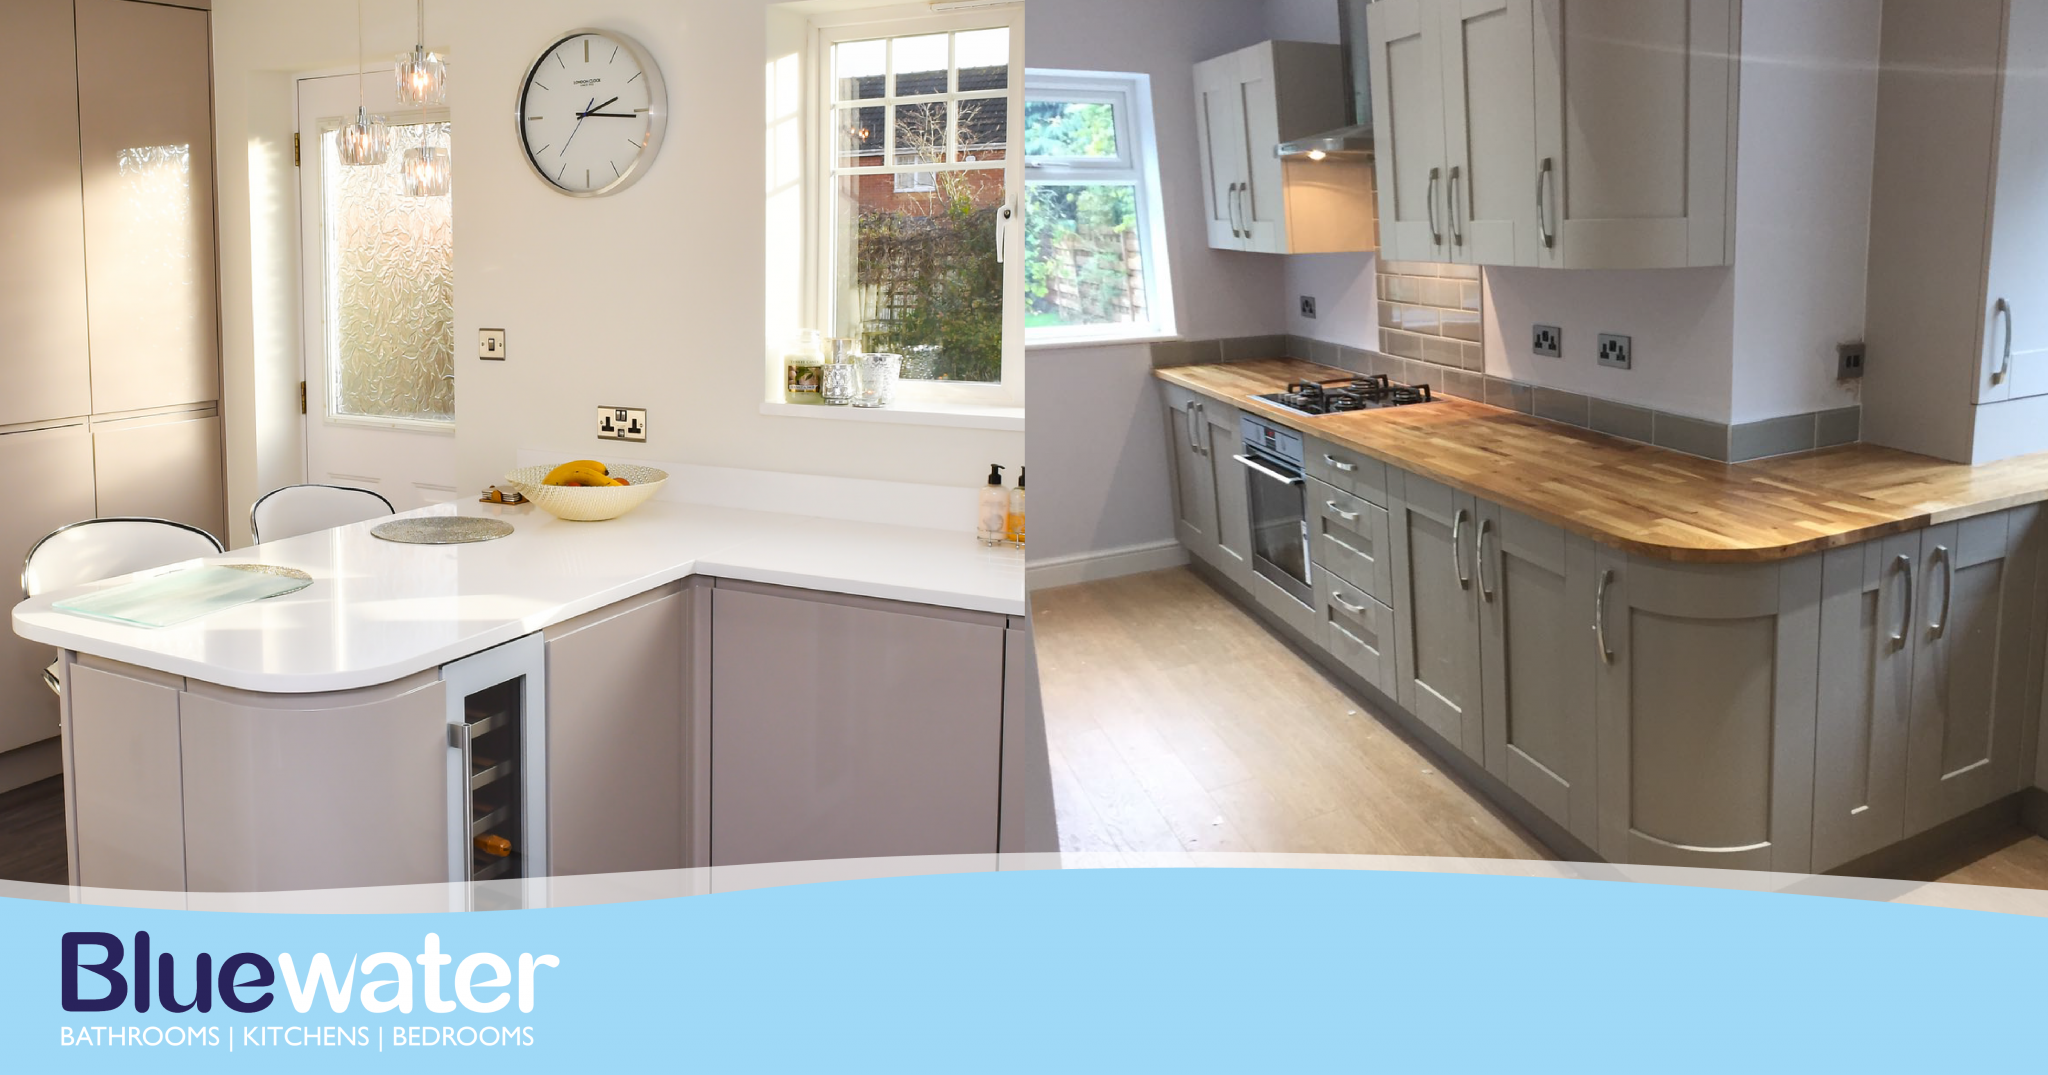 Which Kind Of Worktop Should You Go For Bluewater Bathrooms Kitchens